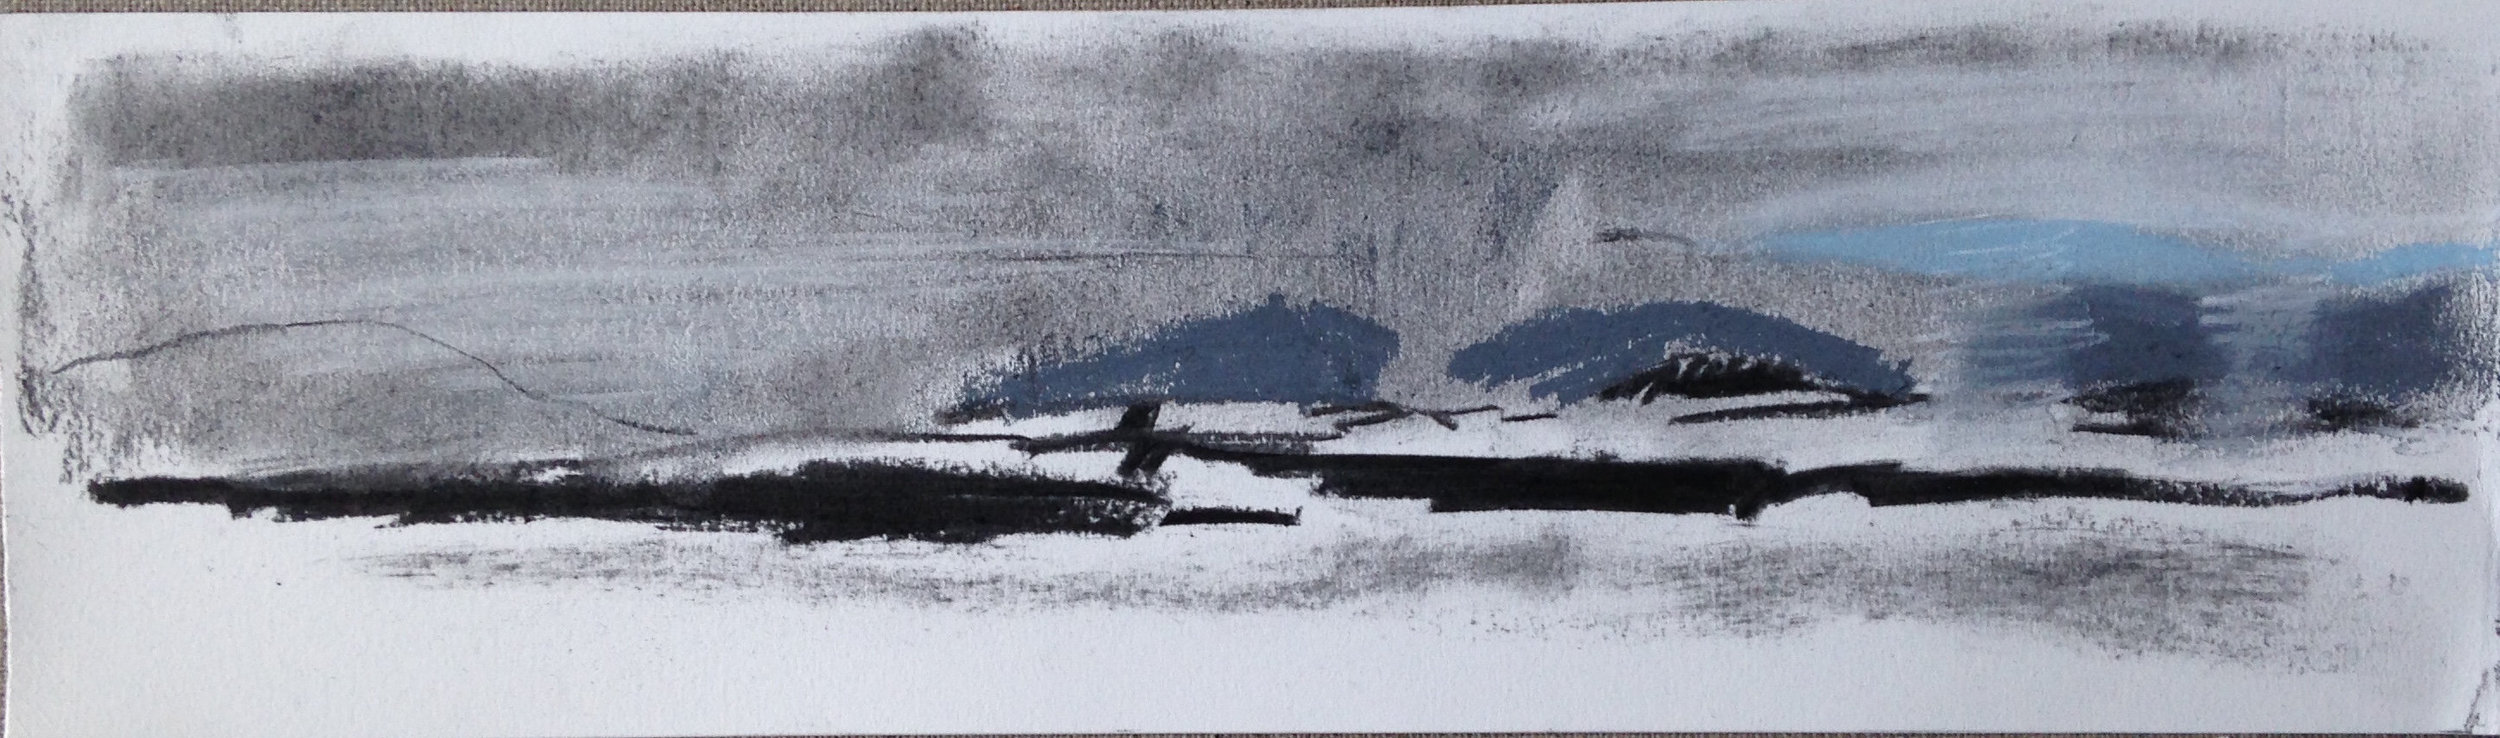 Snow storm over Rousay I